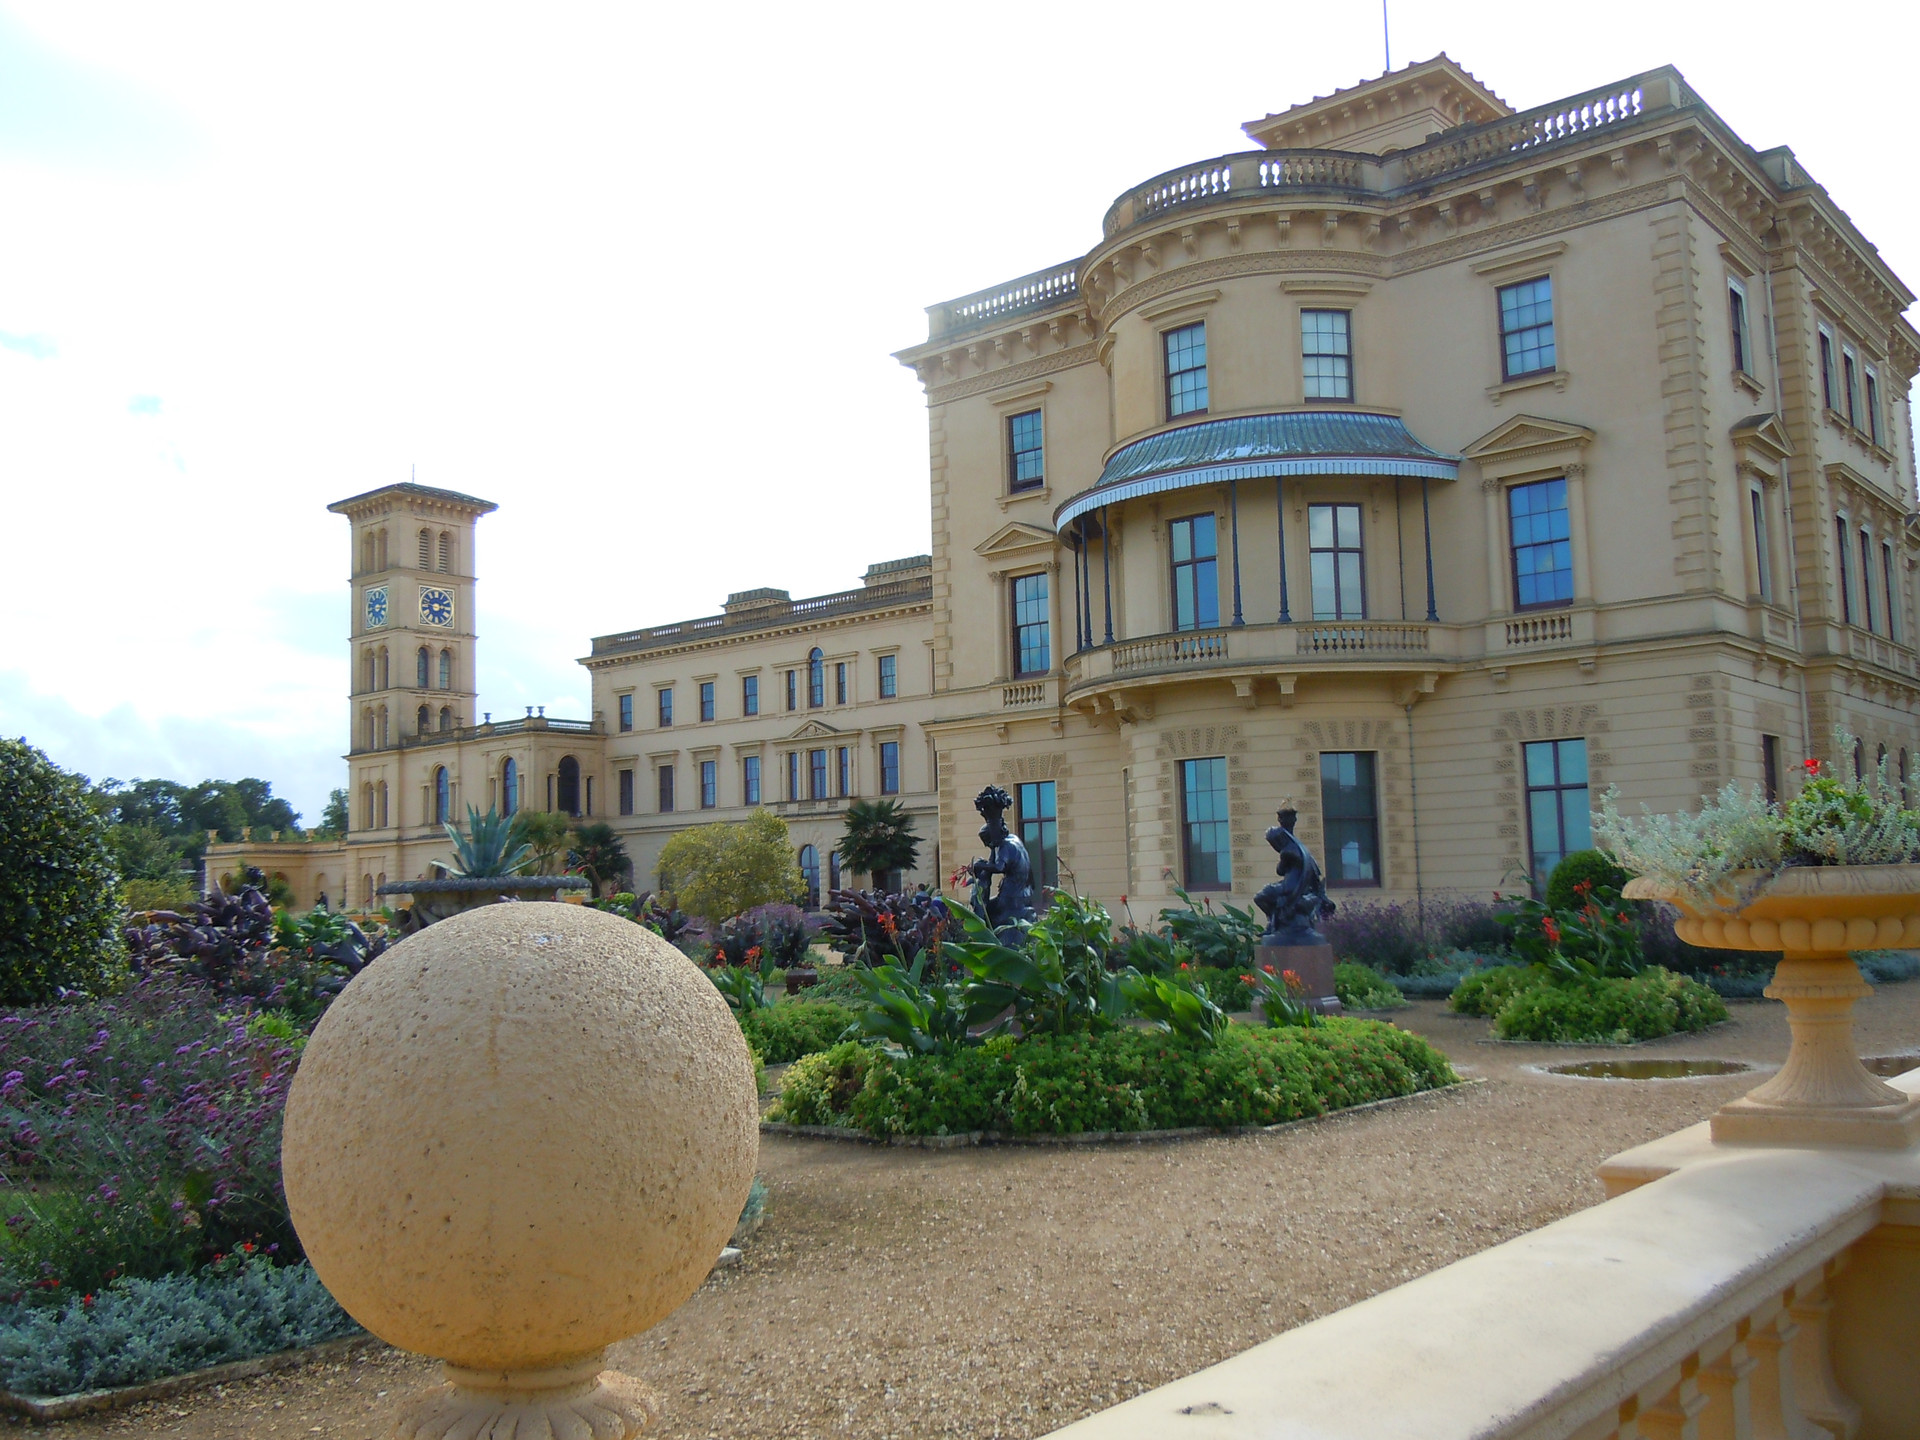 Osborne House on the Isle of Wight. former Home of Queen Victoria